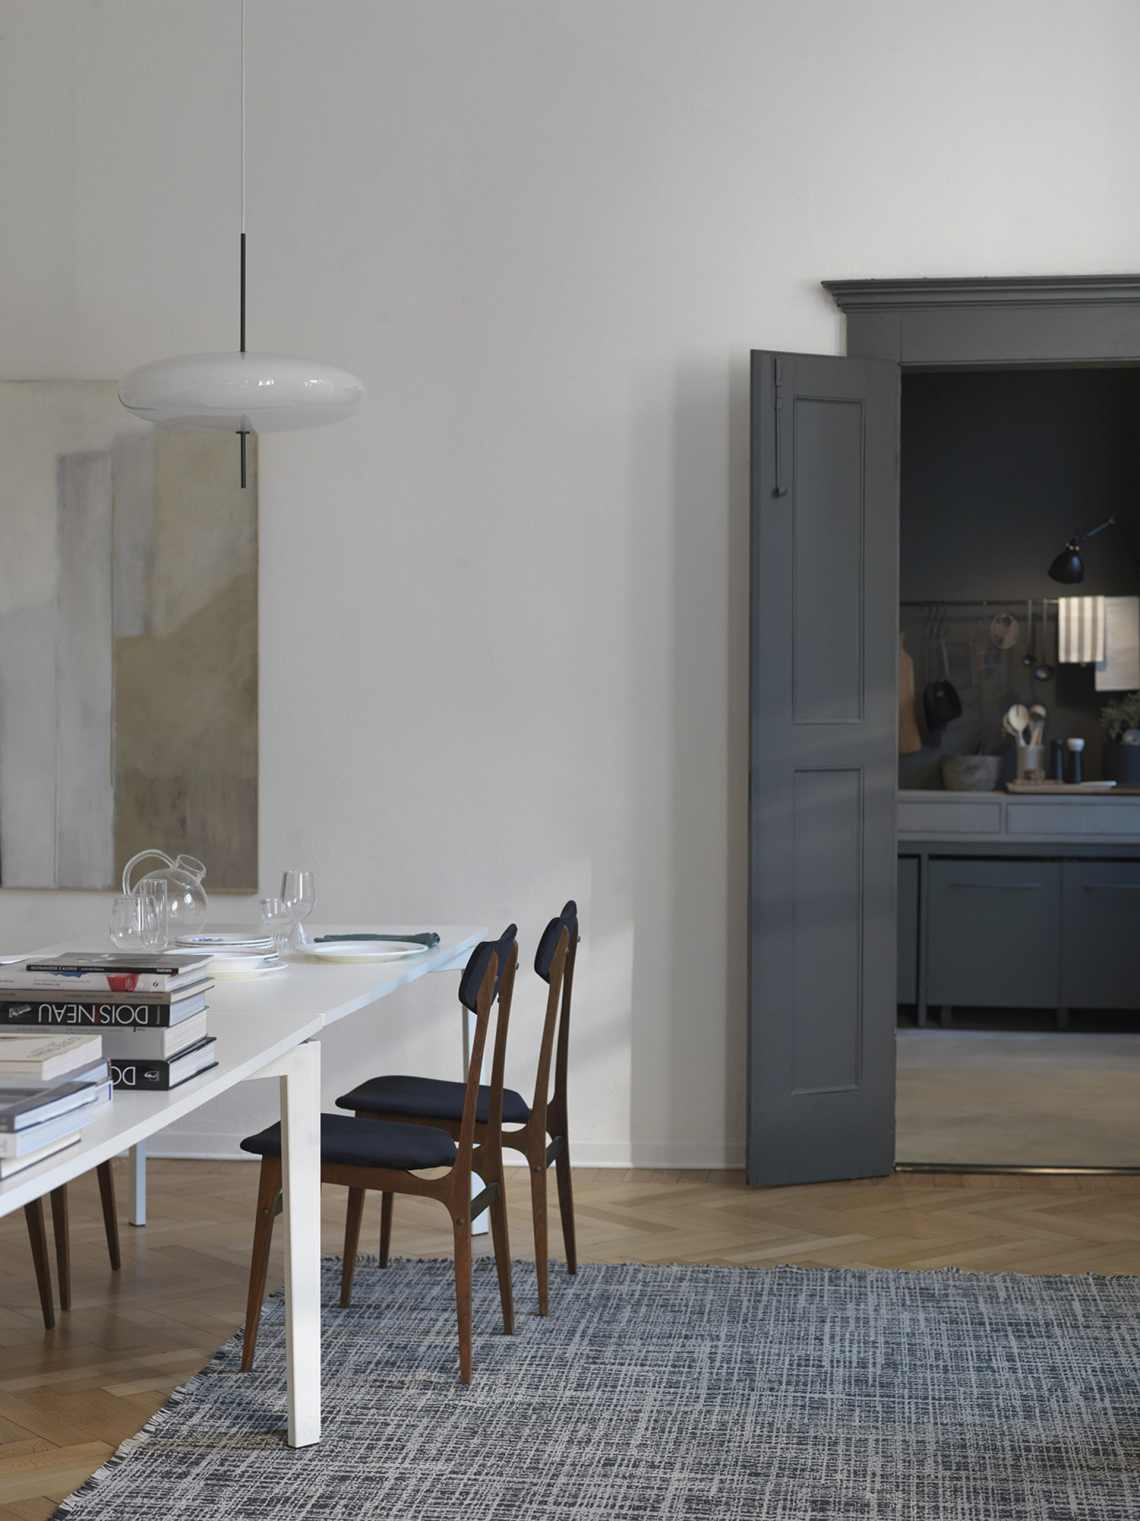 Stunning Como apartment with a dark kitchen - via Coco Lapine Design blog